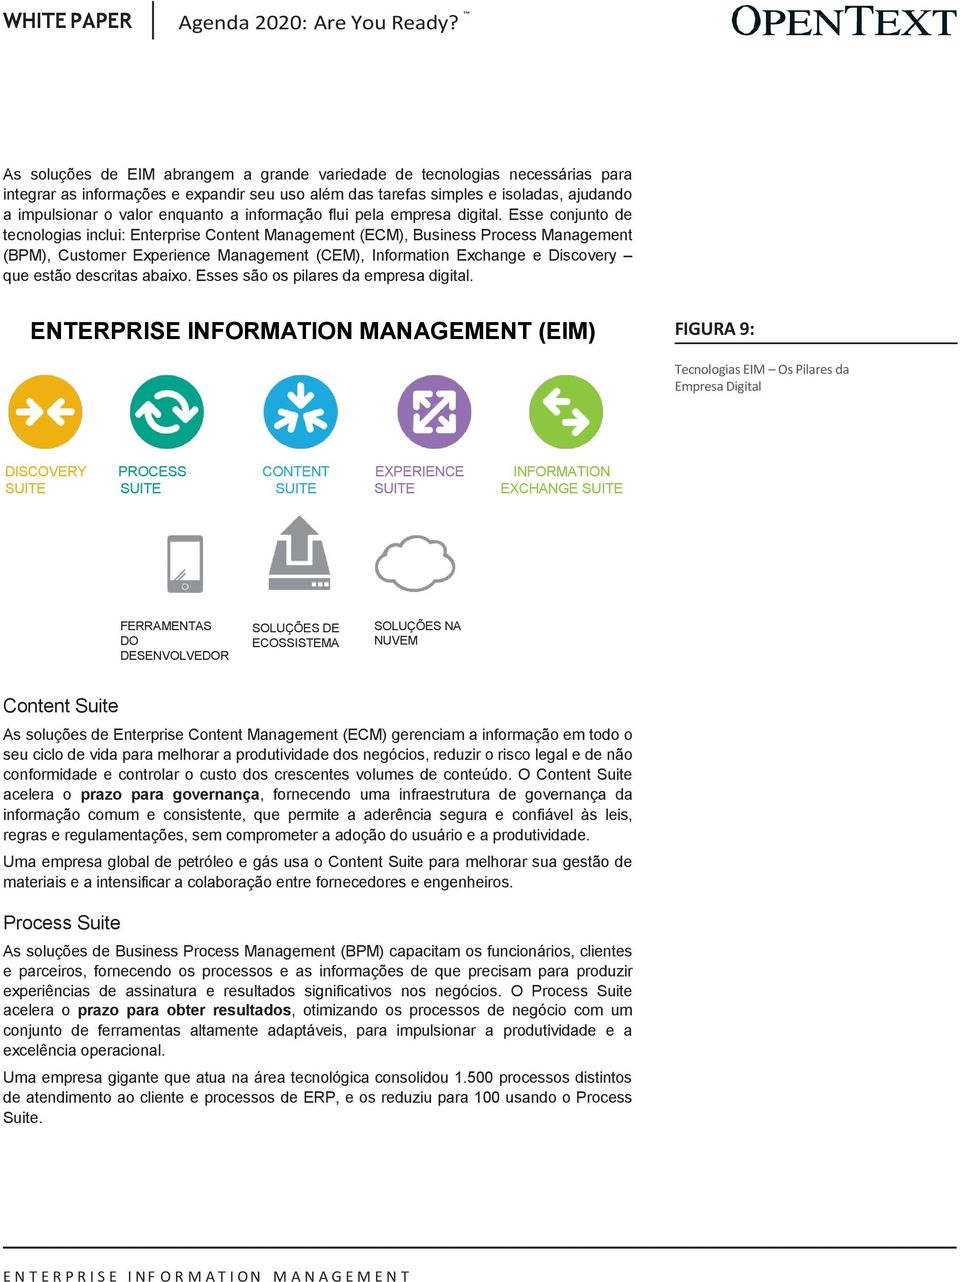 Esse conjunto de tecnologias inclui: Enterprise Content Management (ECM), Business Process Management (BPM), Customer Experience Management (CEM), Information Exchange e Discovery que estão descritas